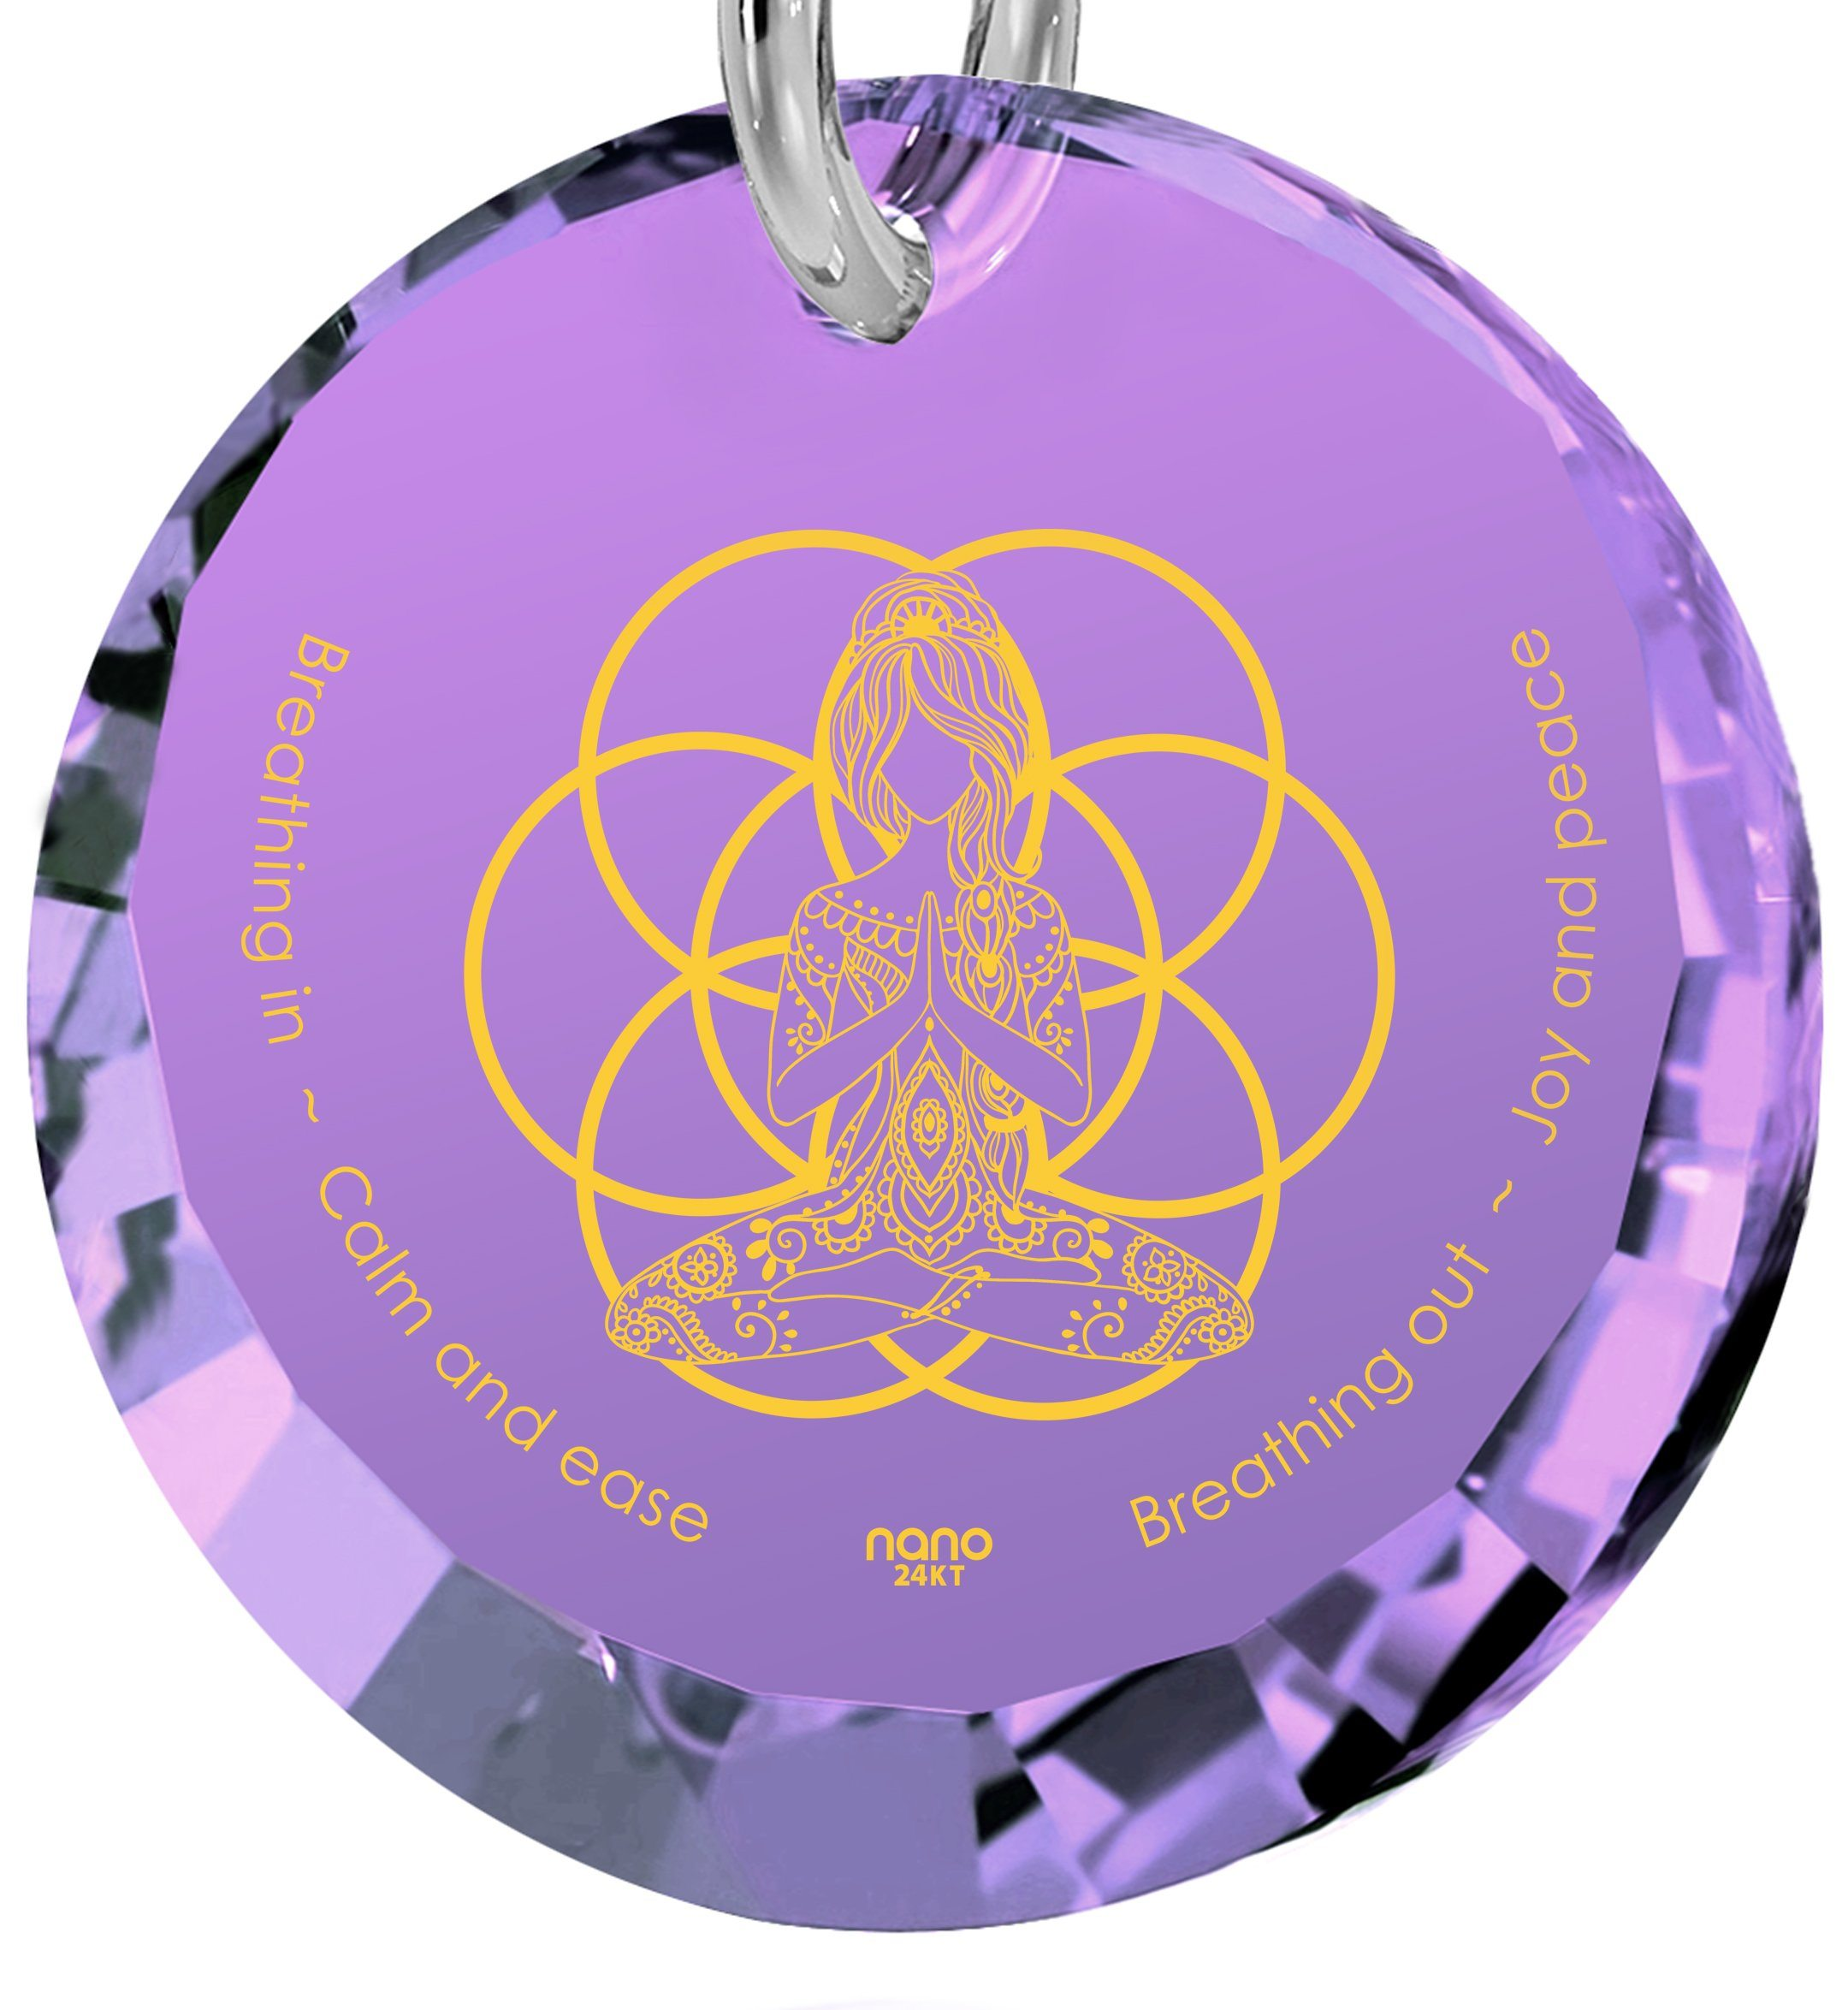 """Breathe in, Breathe out"" Engraved in 24k, Meditation Jewelry with Amethyst Pendant, Buddha Gifts, Nano Jewelry"